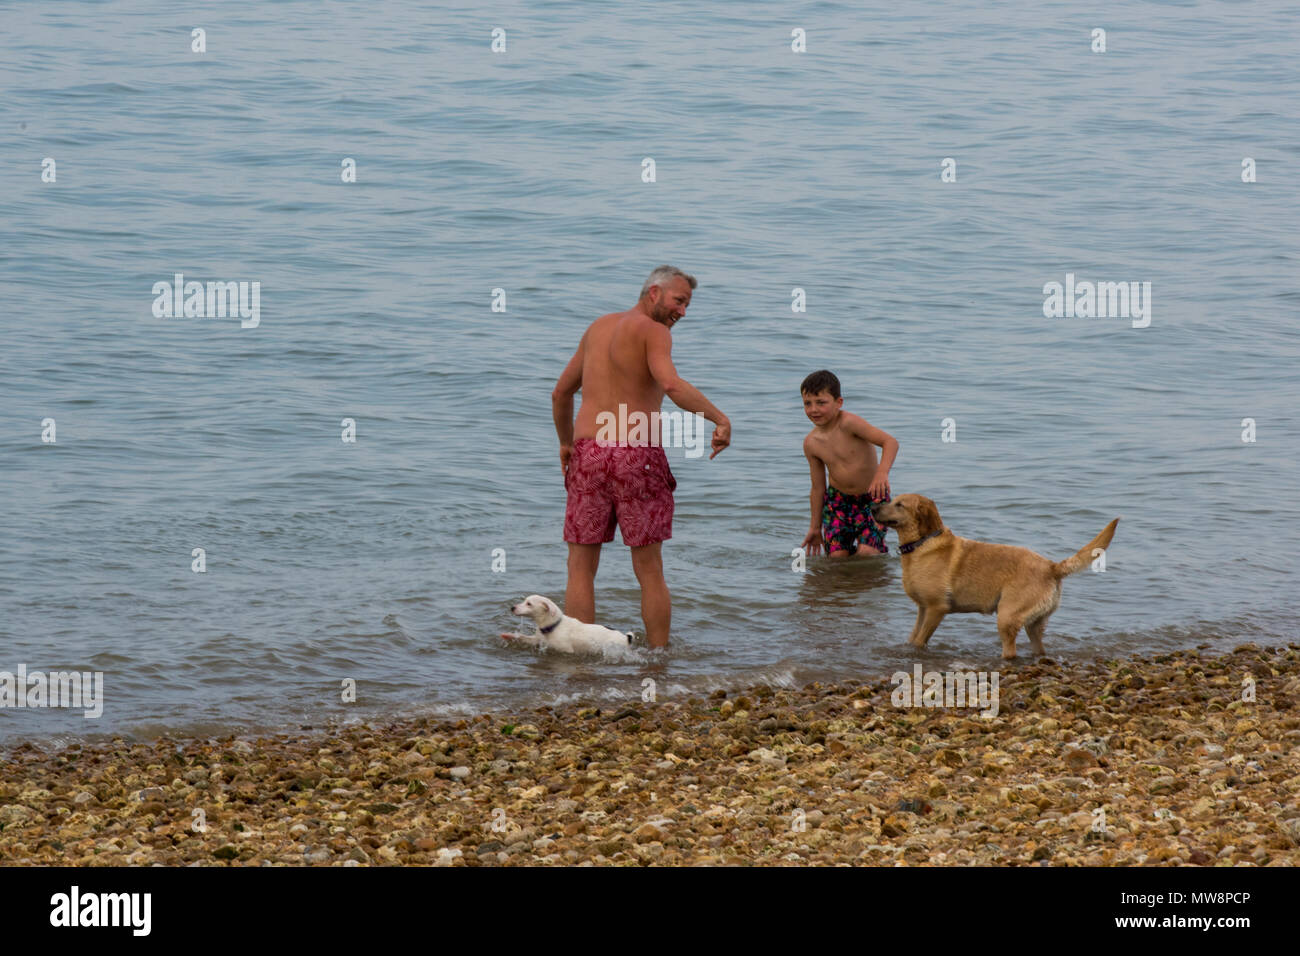 a father and son playing with two dogs or their pets at the seaside on a pebble beach at cowes on the isle of wight. family fun with pets at seaside. - Stock Image